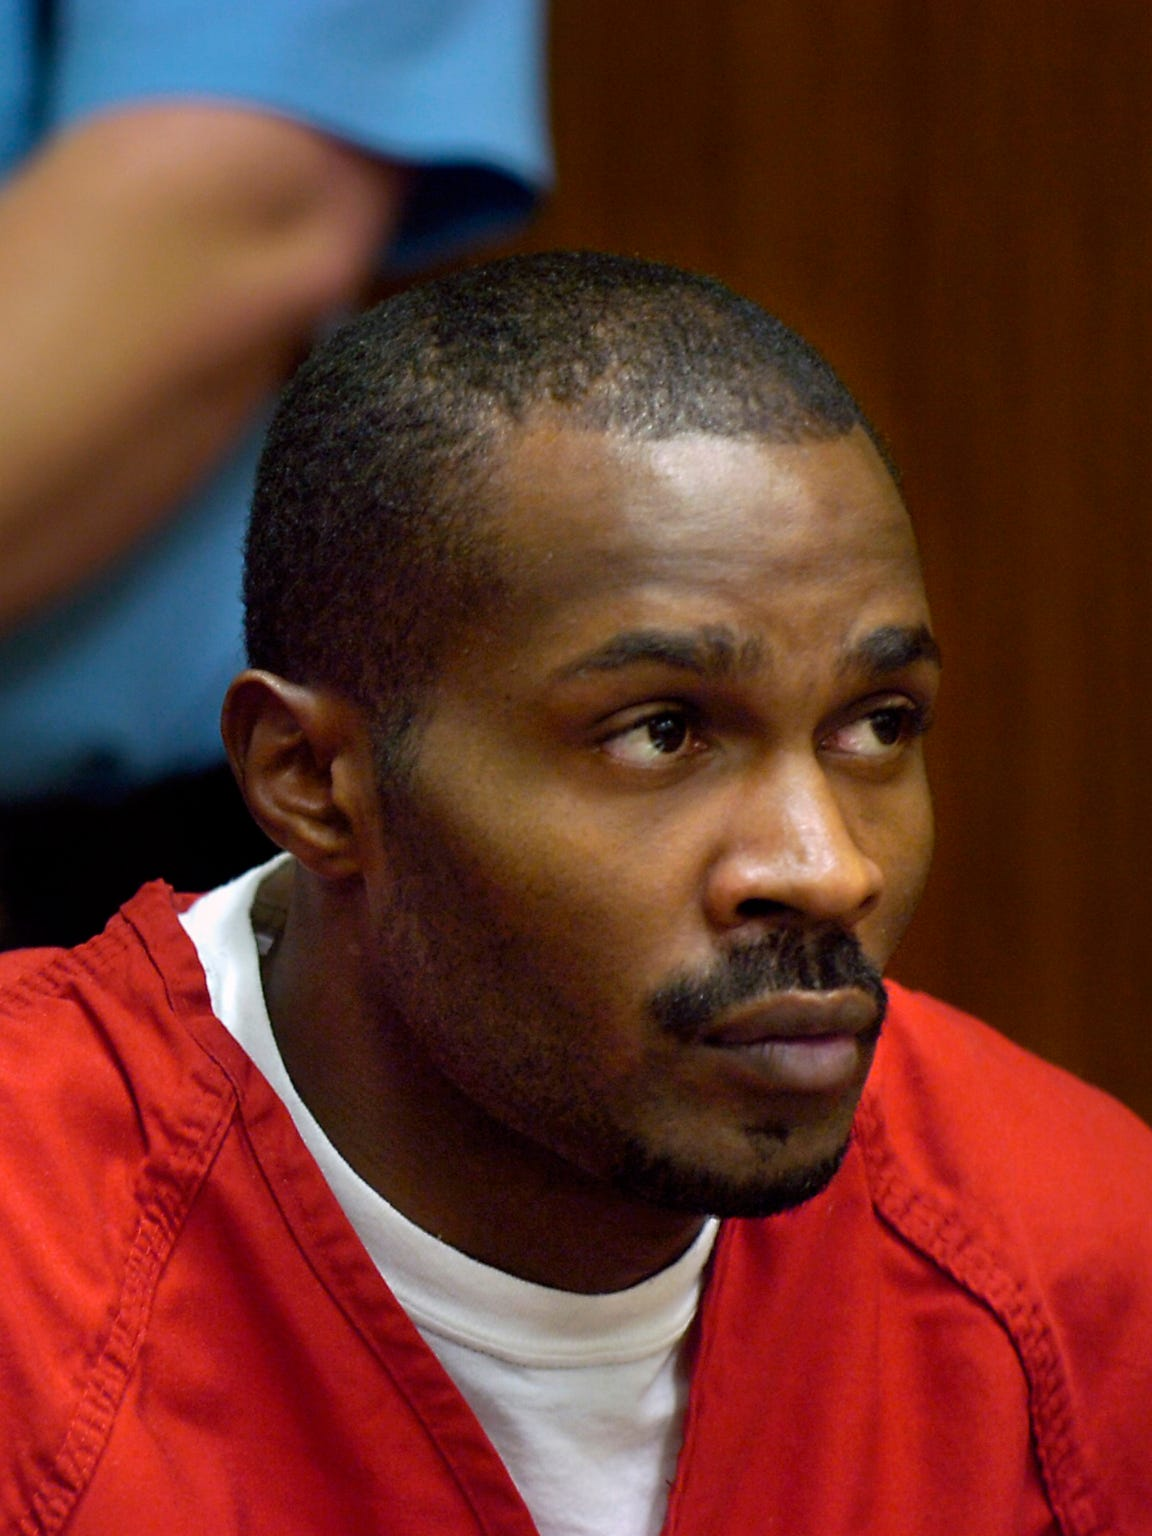 In 2008, Matthew Macon was convicted of killing two